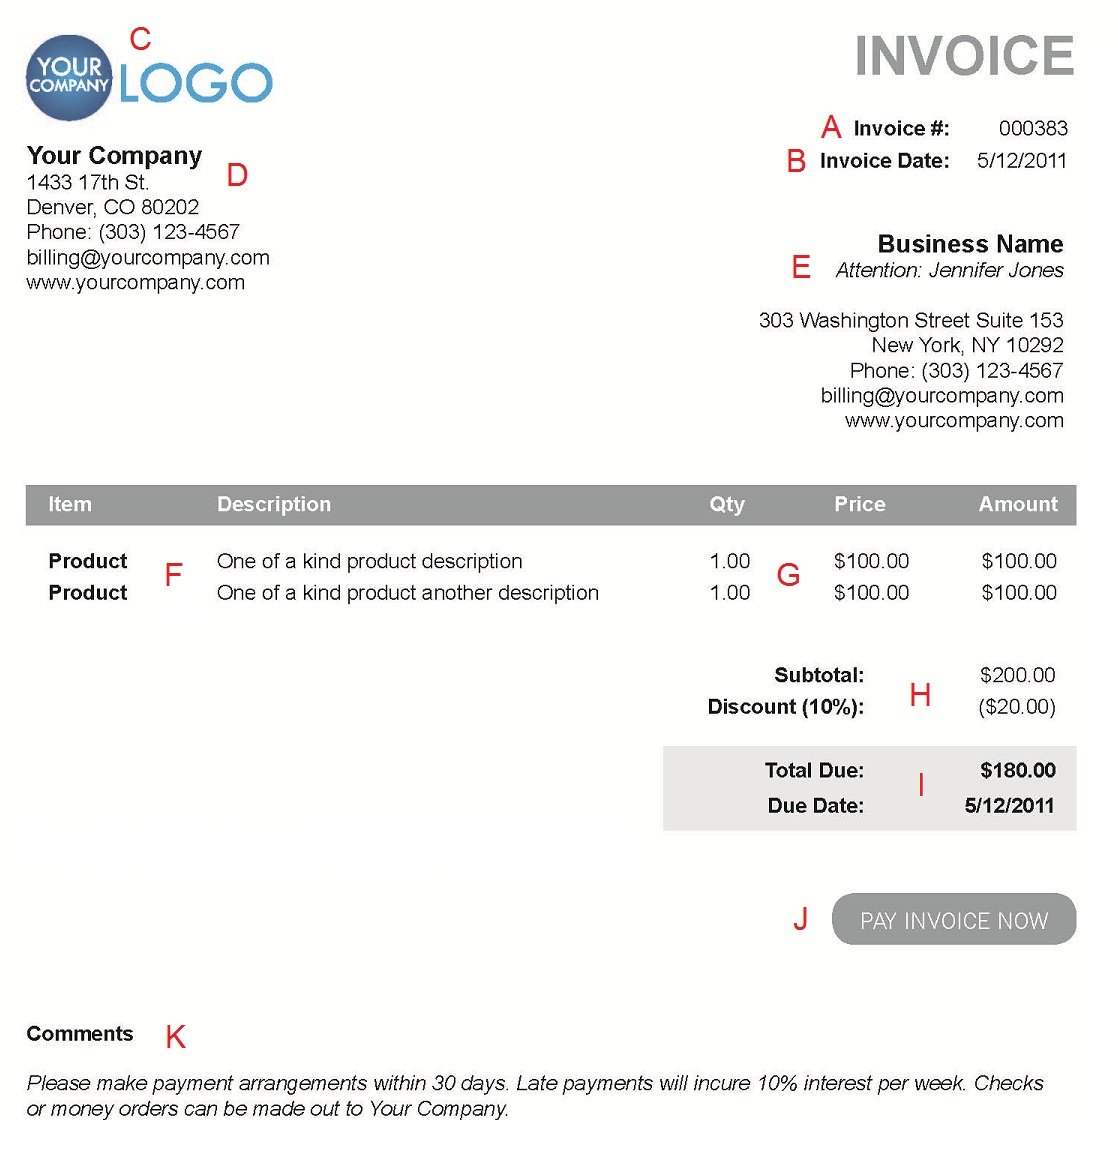 Pigbrotherus  Prepossessing The  Different Sections Of An Electronic Payment Invoice With Glamorous A  With Endearing Gift Receipt Also Certified Mail Return Receipt In Addition Receipt Scanner App And How Do You Spell Receipt As Well As Receipt Paper Additionally Free Rental Invoice Template From Paysimplecom With Pigbrotherus  Glamorous The  Different Sections Of An Electronic Payment Invoice With Endearing A  And Prepossessing Gift Receipt Also Certified Mail Return Receipt In Addition Receipt Scanner App From Paysimplecom